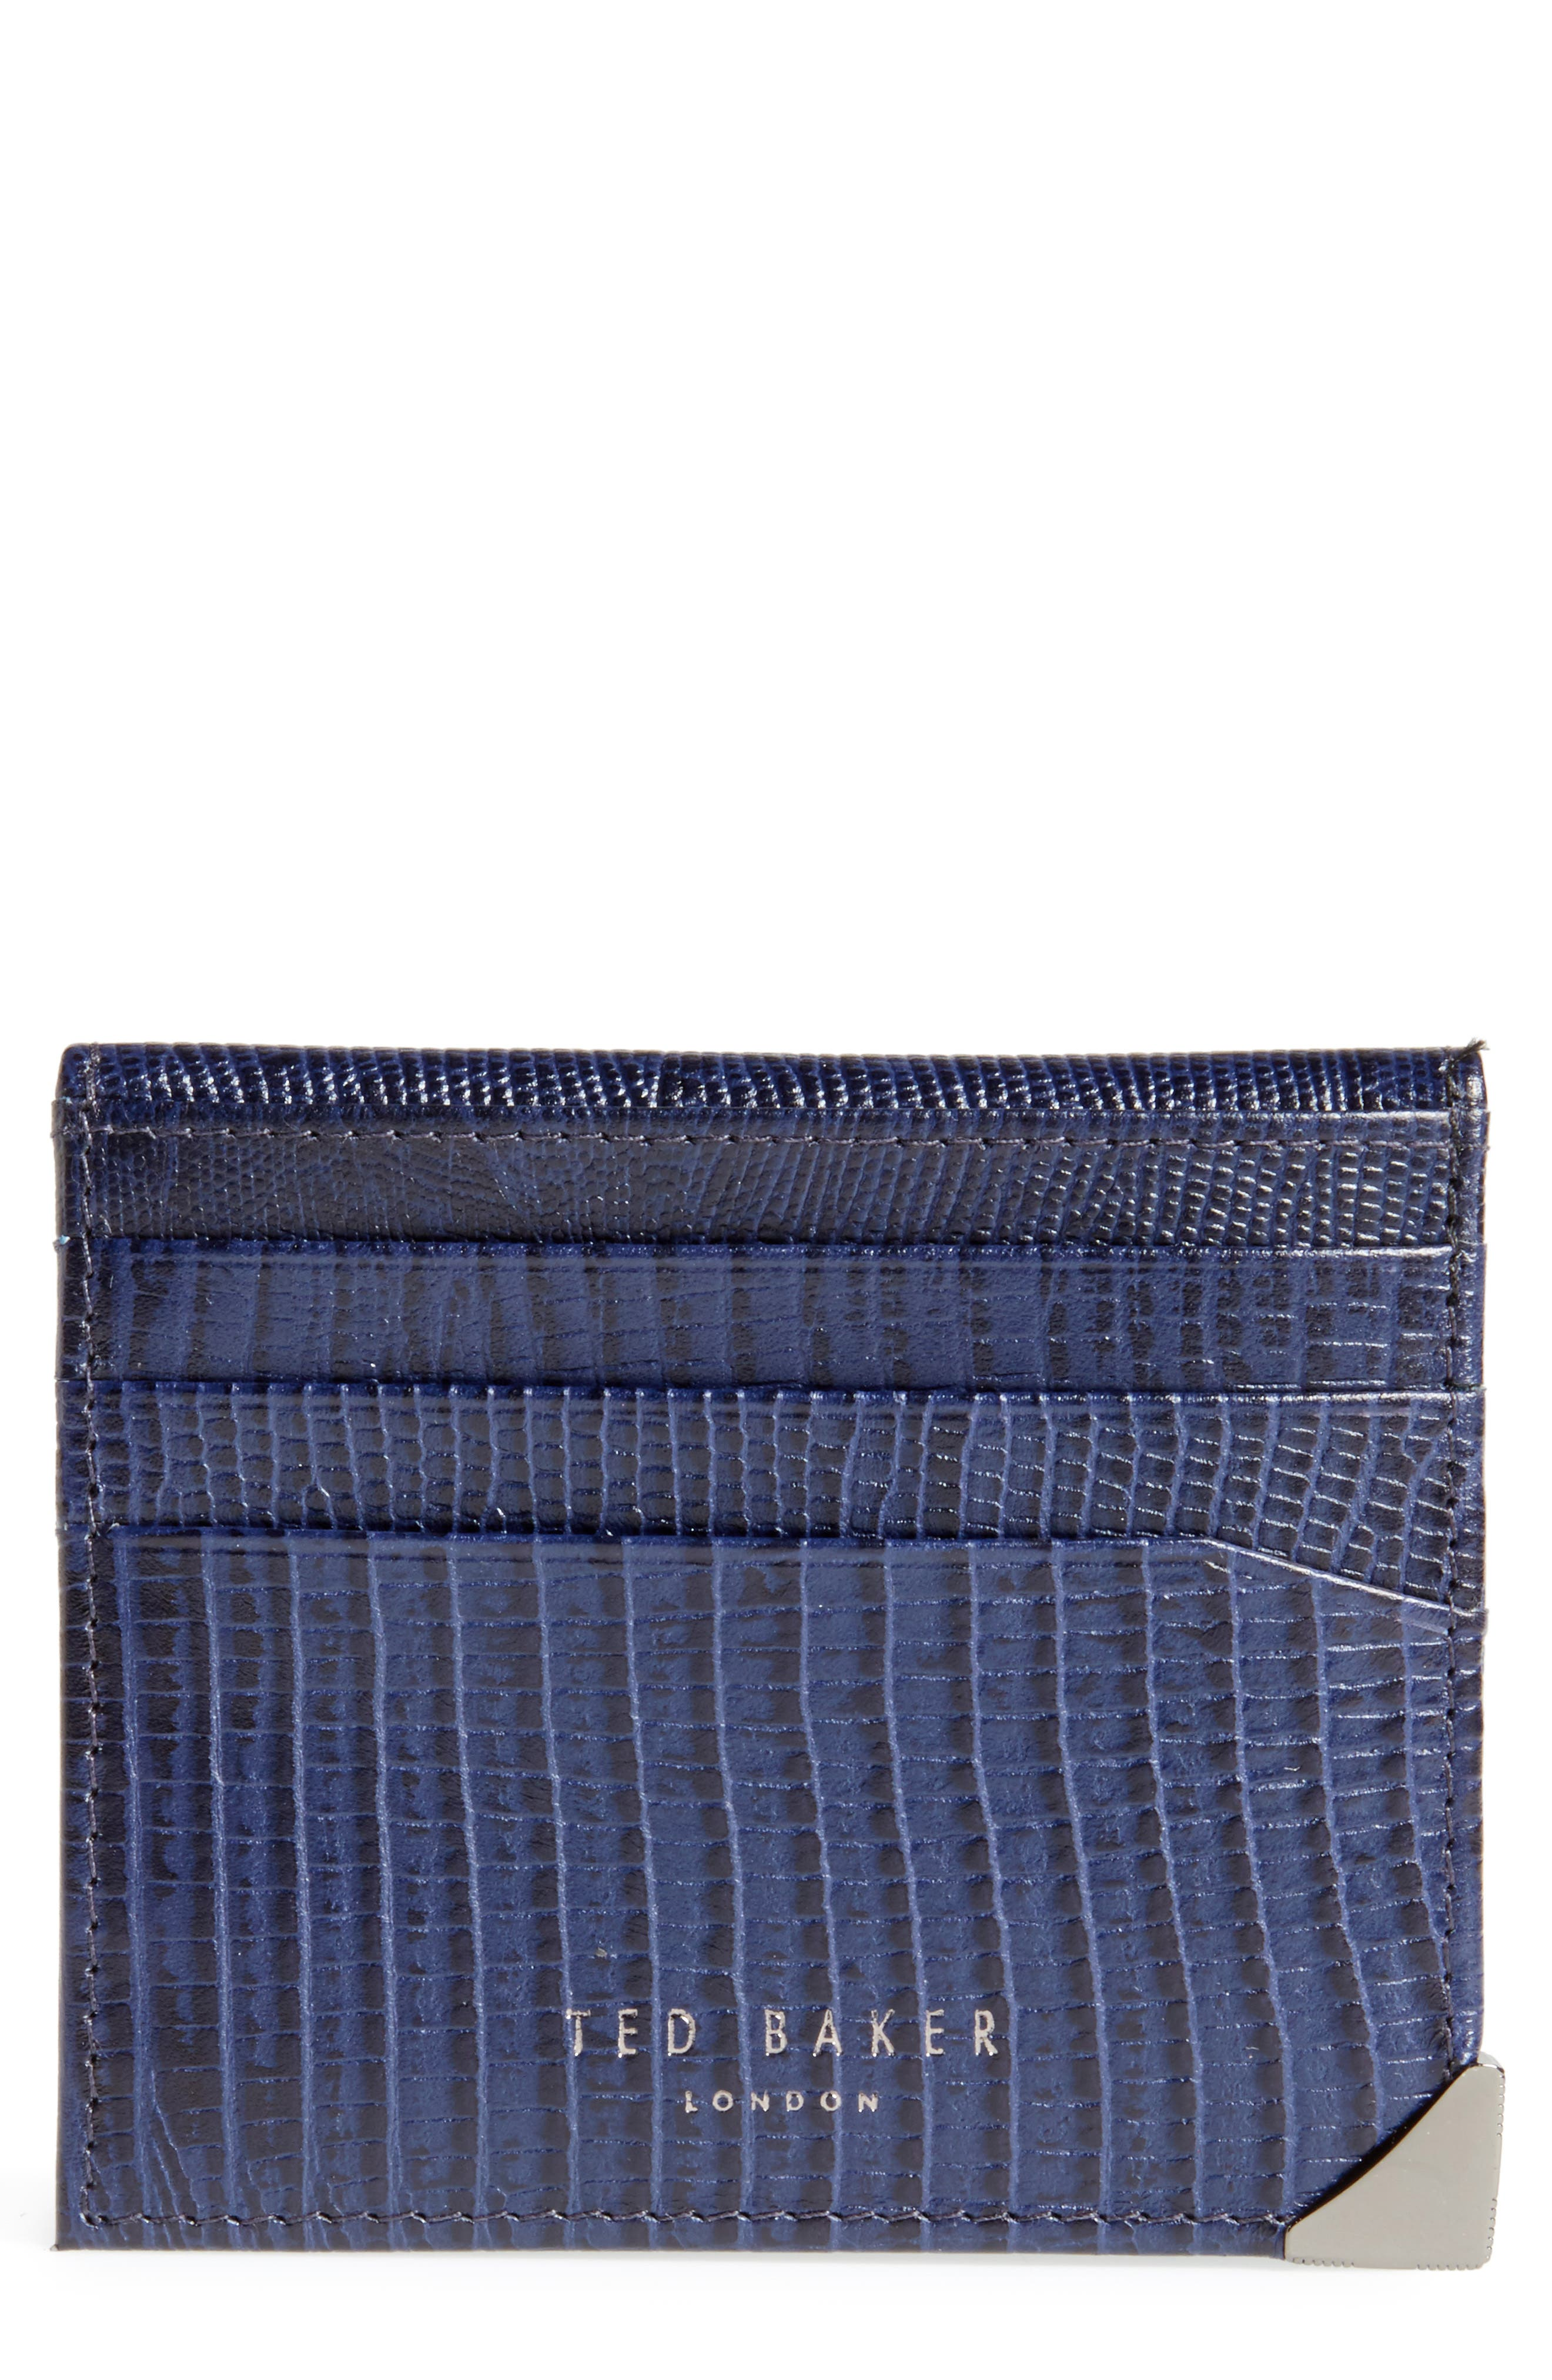 Liztay Lizard Embossed Leather Foldover Card Case,                         Main,                         color, Navy